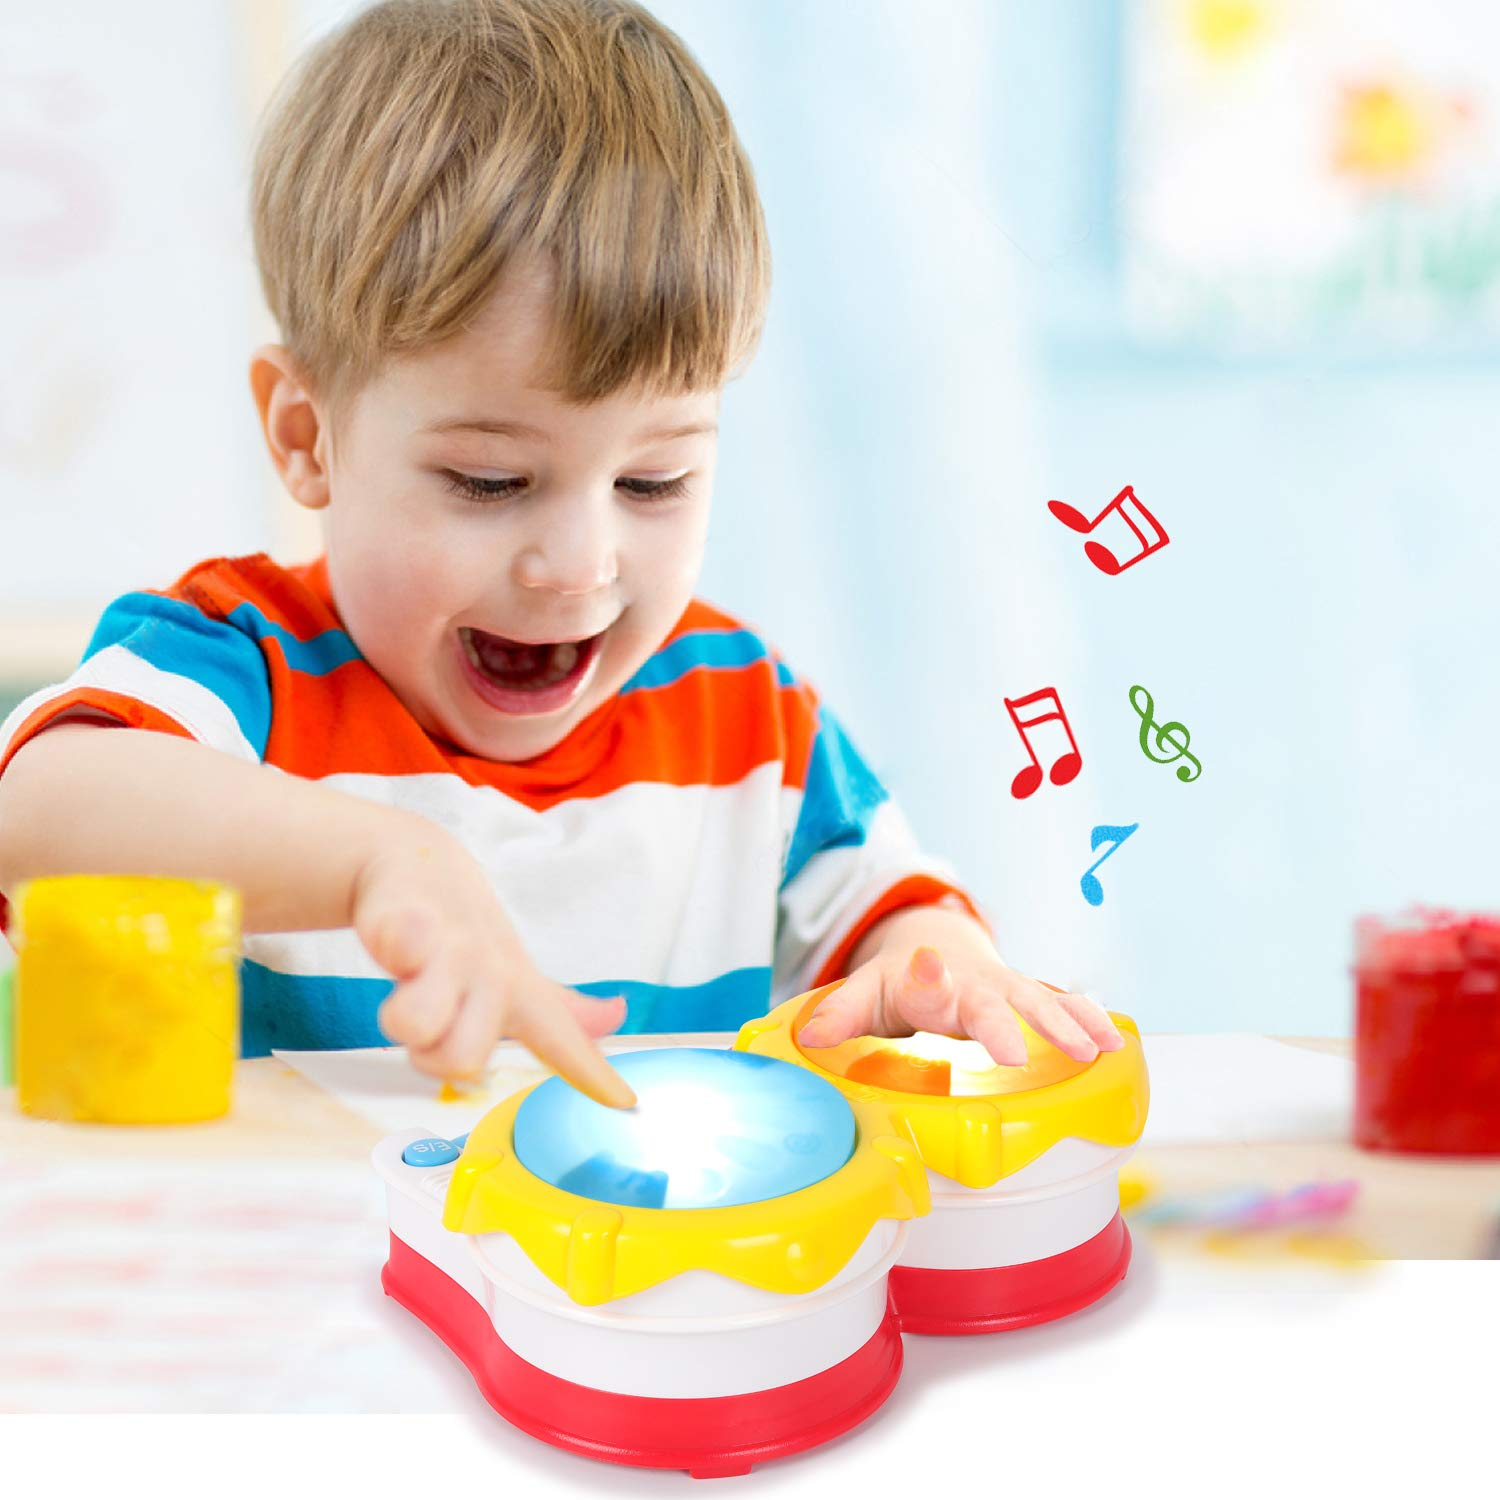 M ZIMOON Baby Musical Toys Hand Drum Piano Early Education Musical Instruments Learning Electronic Keyboard for Girls And Boys Toddlers